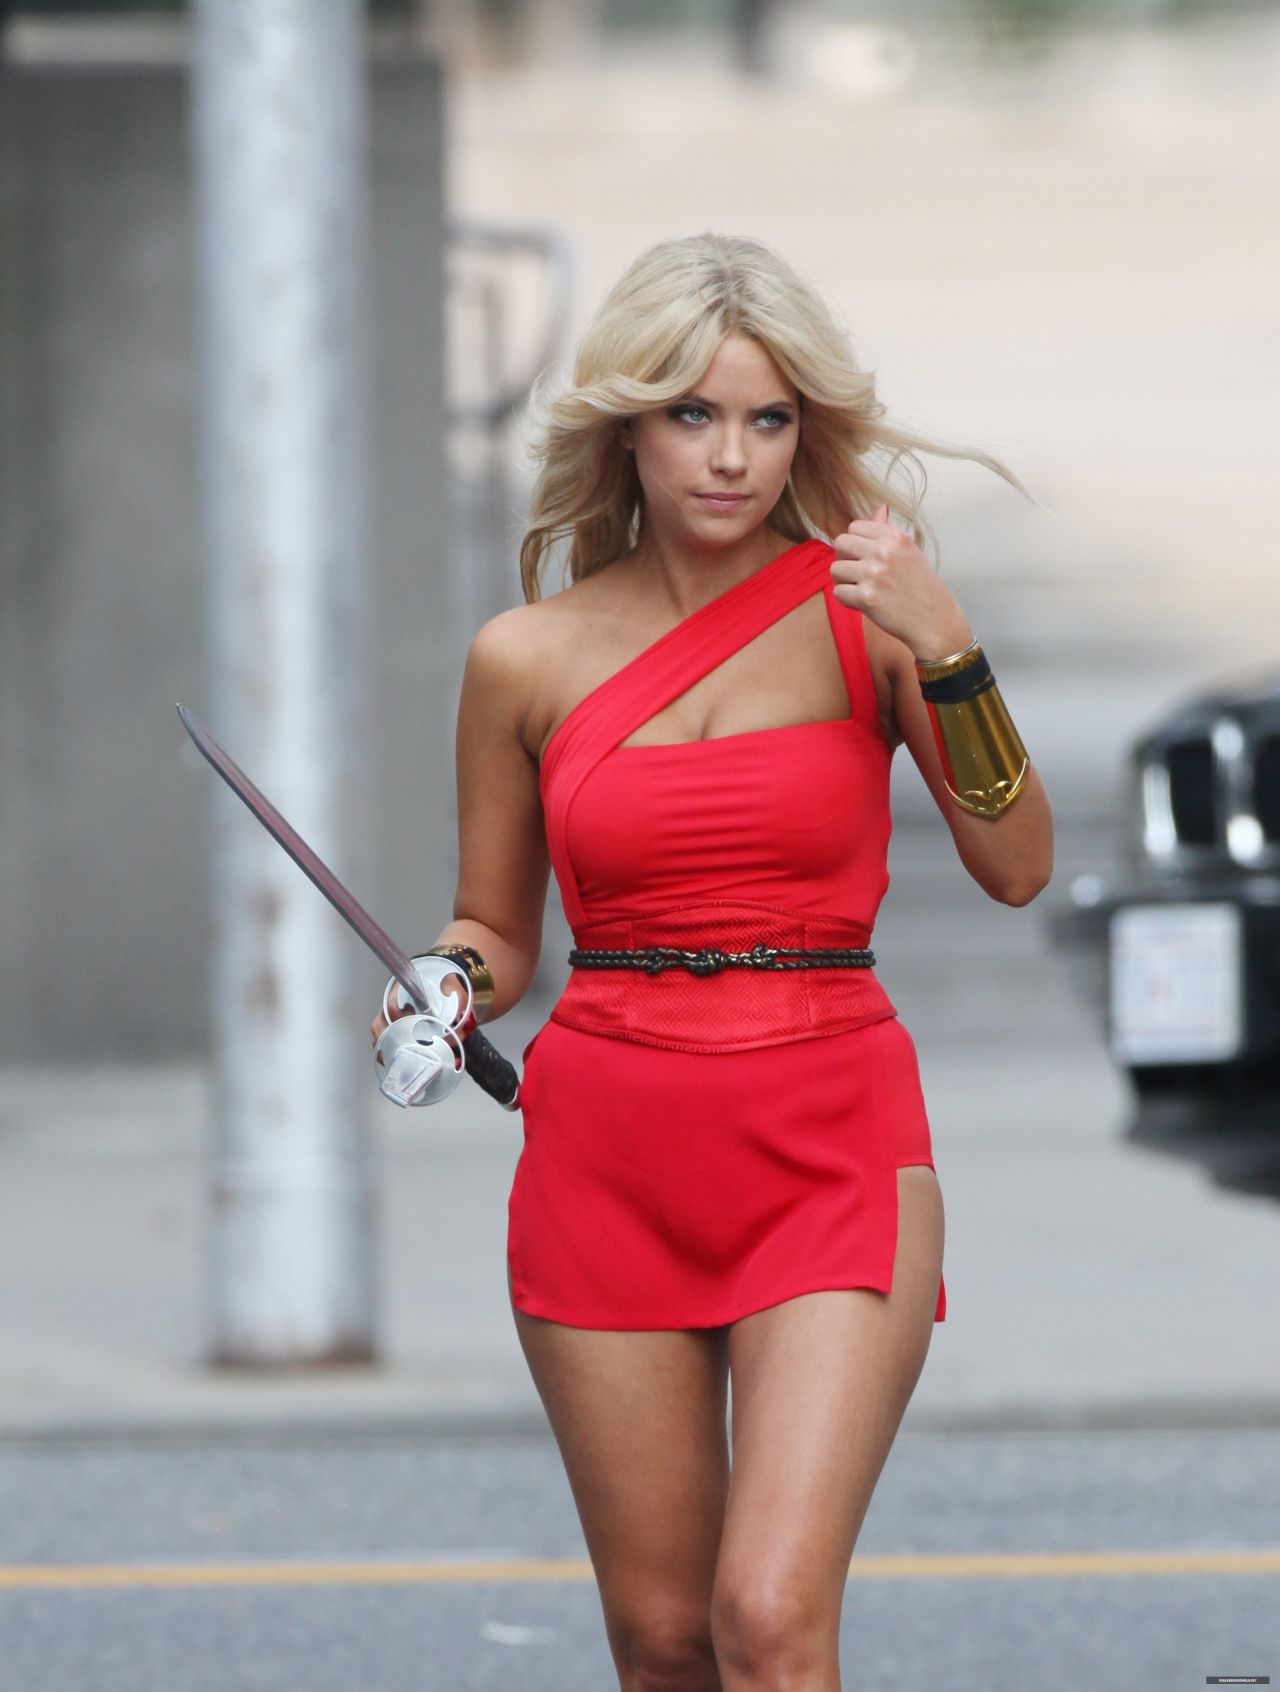 Ashley Benson - 'Pixels' Set Photos